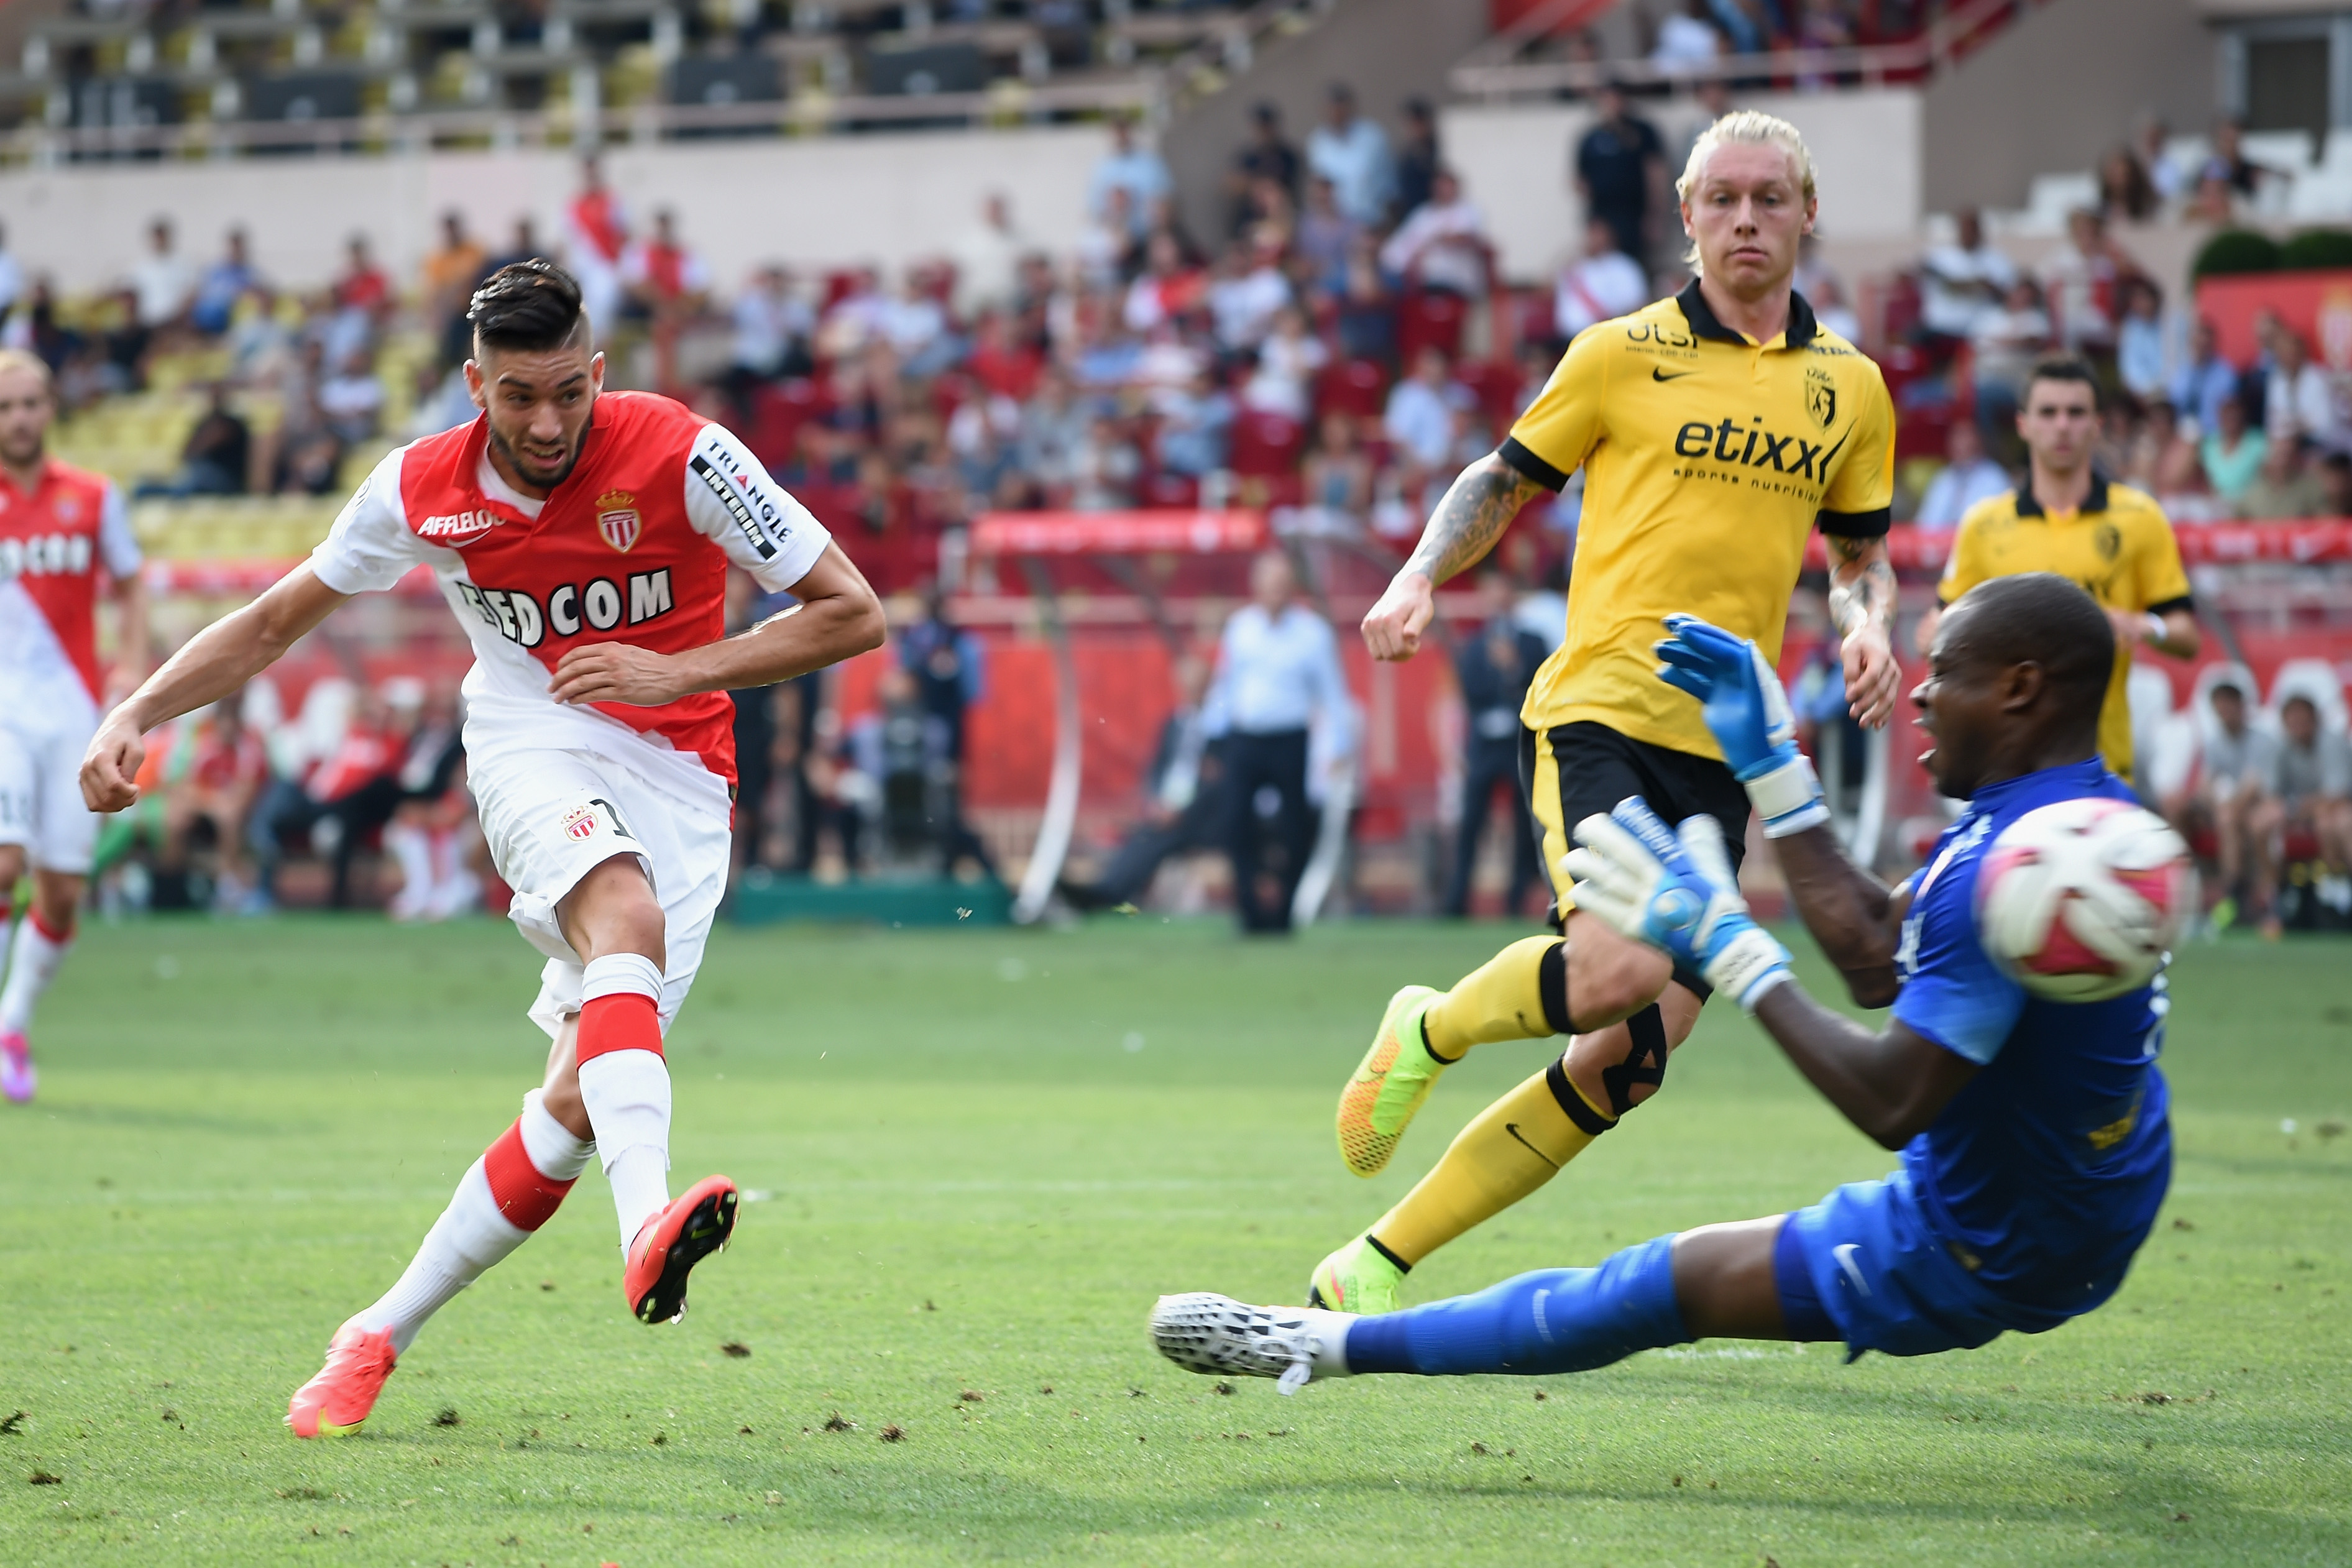 Yannick Ferreira Carrasco of Monaco shoots at goal during the French Ligue 1 match between AS Monaco FC and LOSC Lille at Louis II Stadium on Aug. 30, 2014 in Monaco,